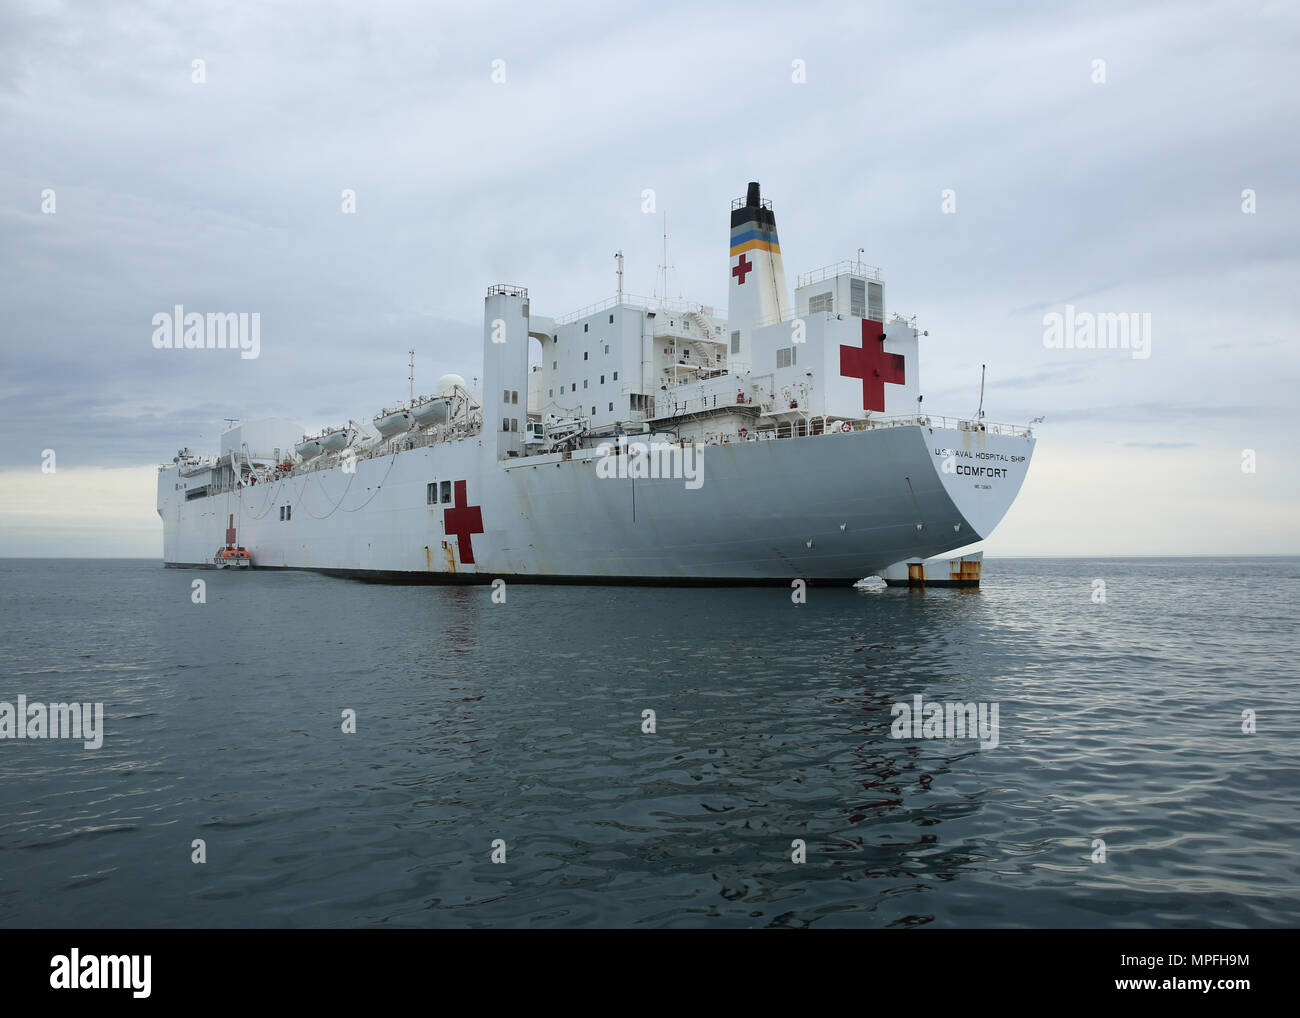 170223-N-OH262-690  ATLANTIC OCEAN (Feb. 23, 2017) The Military Sealift Command hospital ship USNS Comfort (T-AH 20) lowers its tender in the Atlantic Ocean. Comfort's underway period is part of the 2017 Comfort Exercise (COMFEX). The exercise is a quarterly training battery designed to keep the medical personnel, support staff and civil service mariners who serve aboard the ship proficient in their duties. Comfort provides an afloat, mobile, acute surgical medical facility when called upon to the U.S. military, and hospital services to support U.S. disaster relief and humanitarian operations  - Stock Image